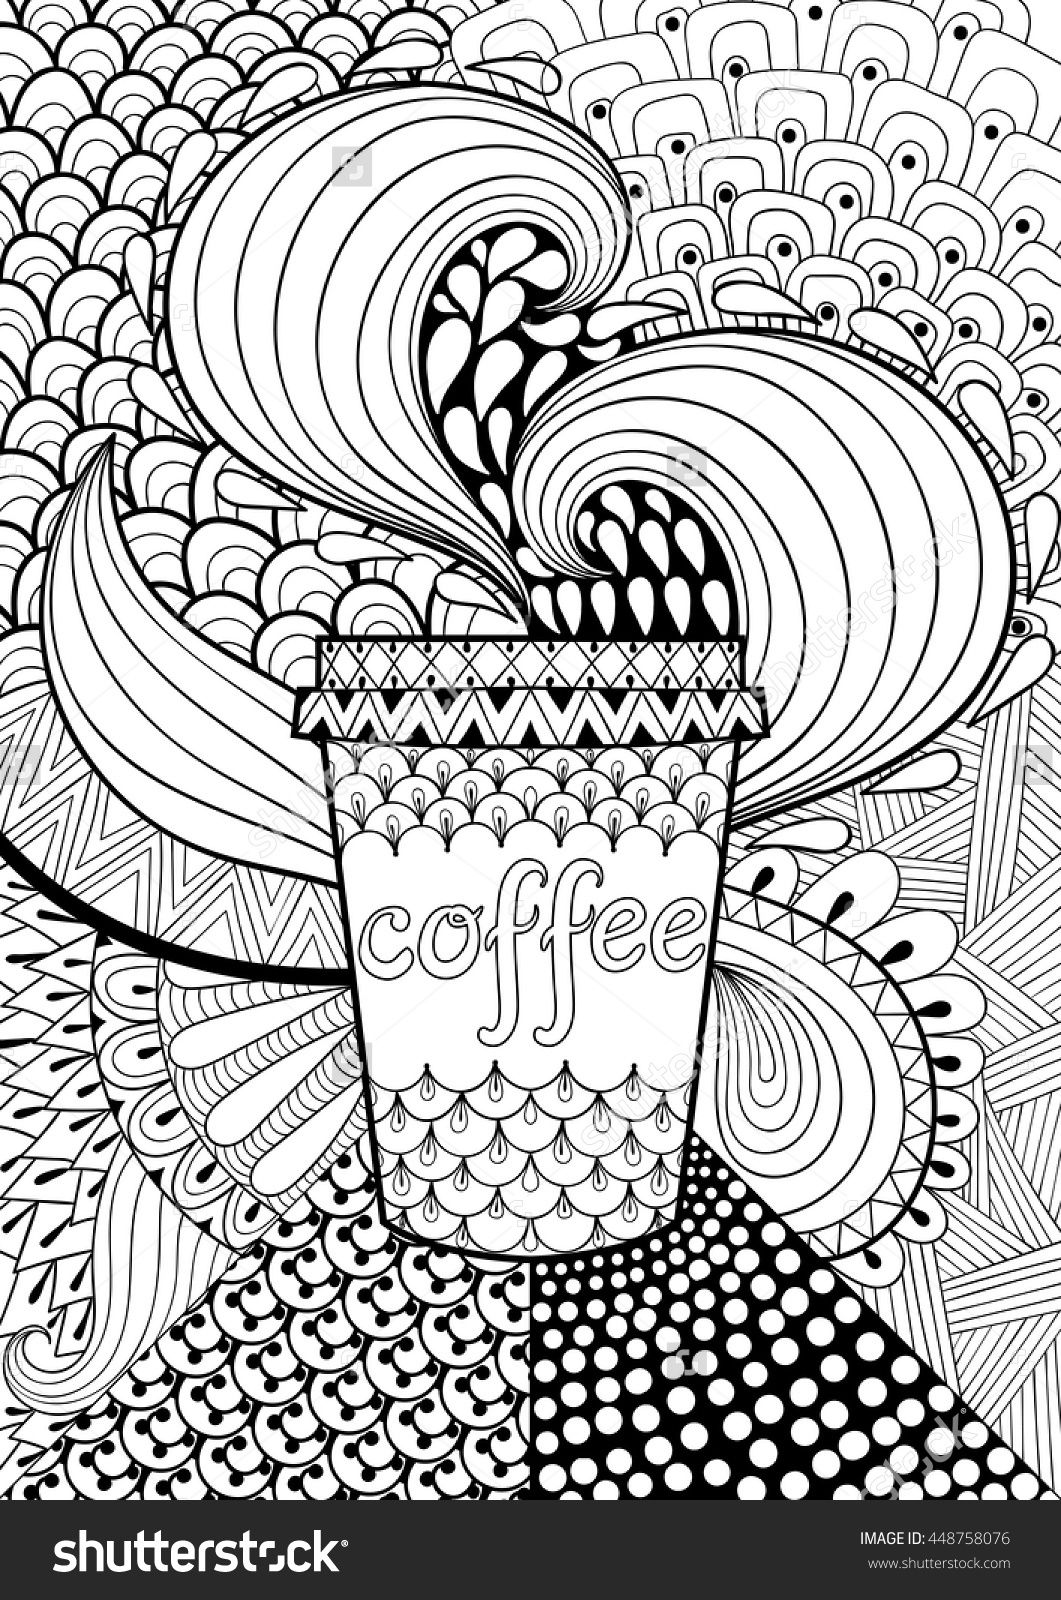 Coffee cup coloring pages